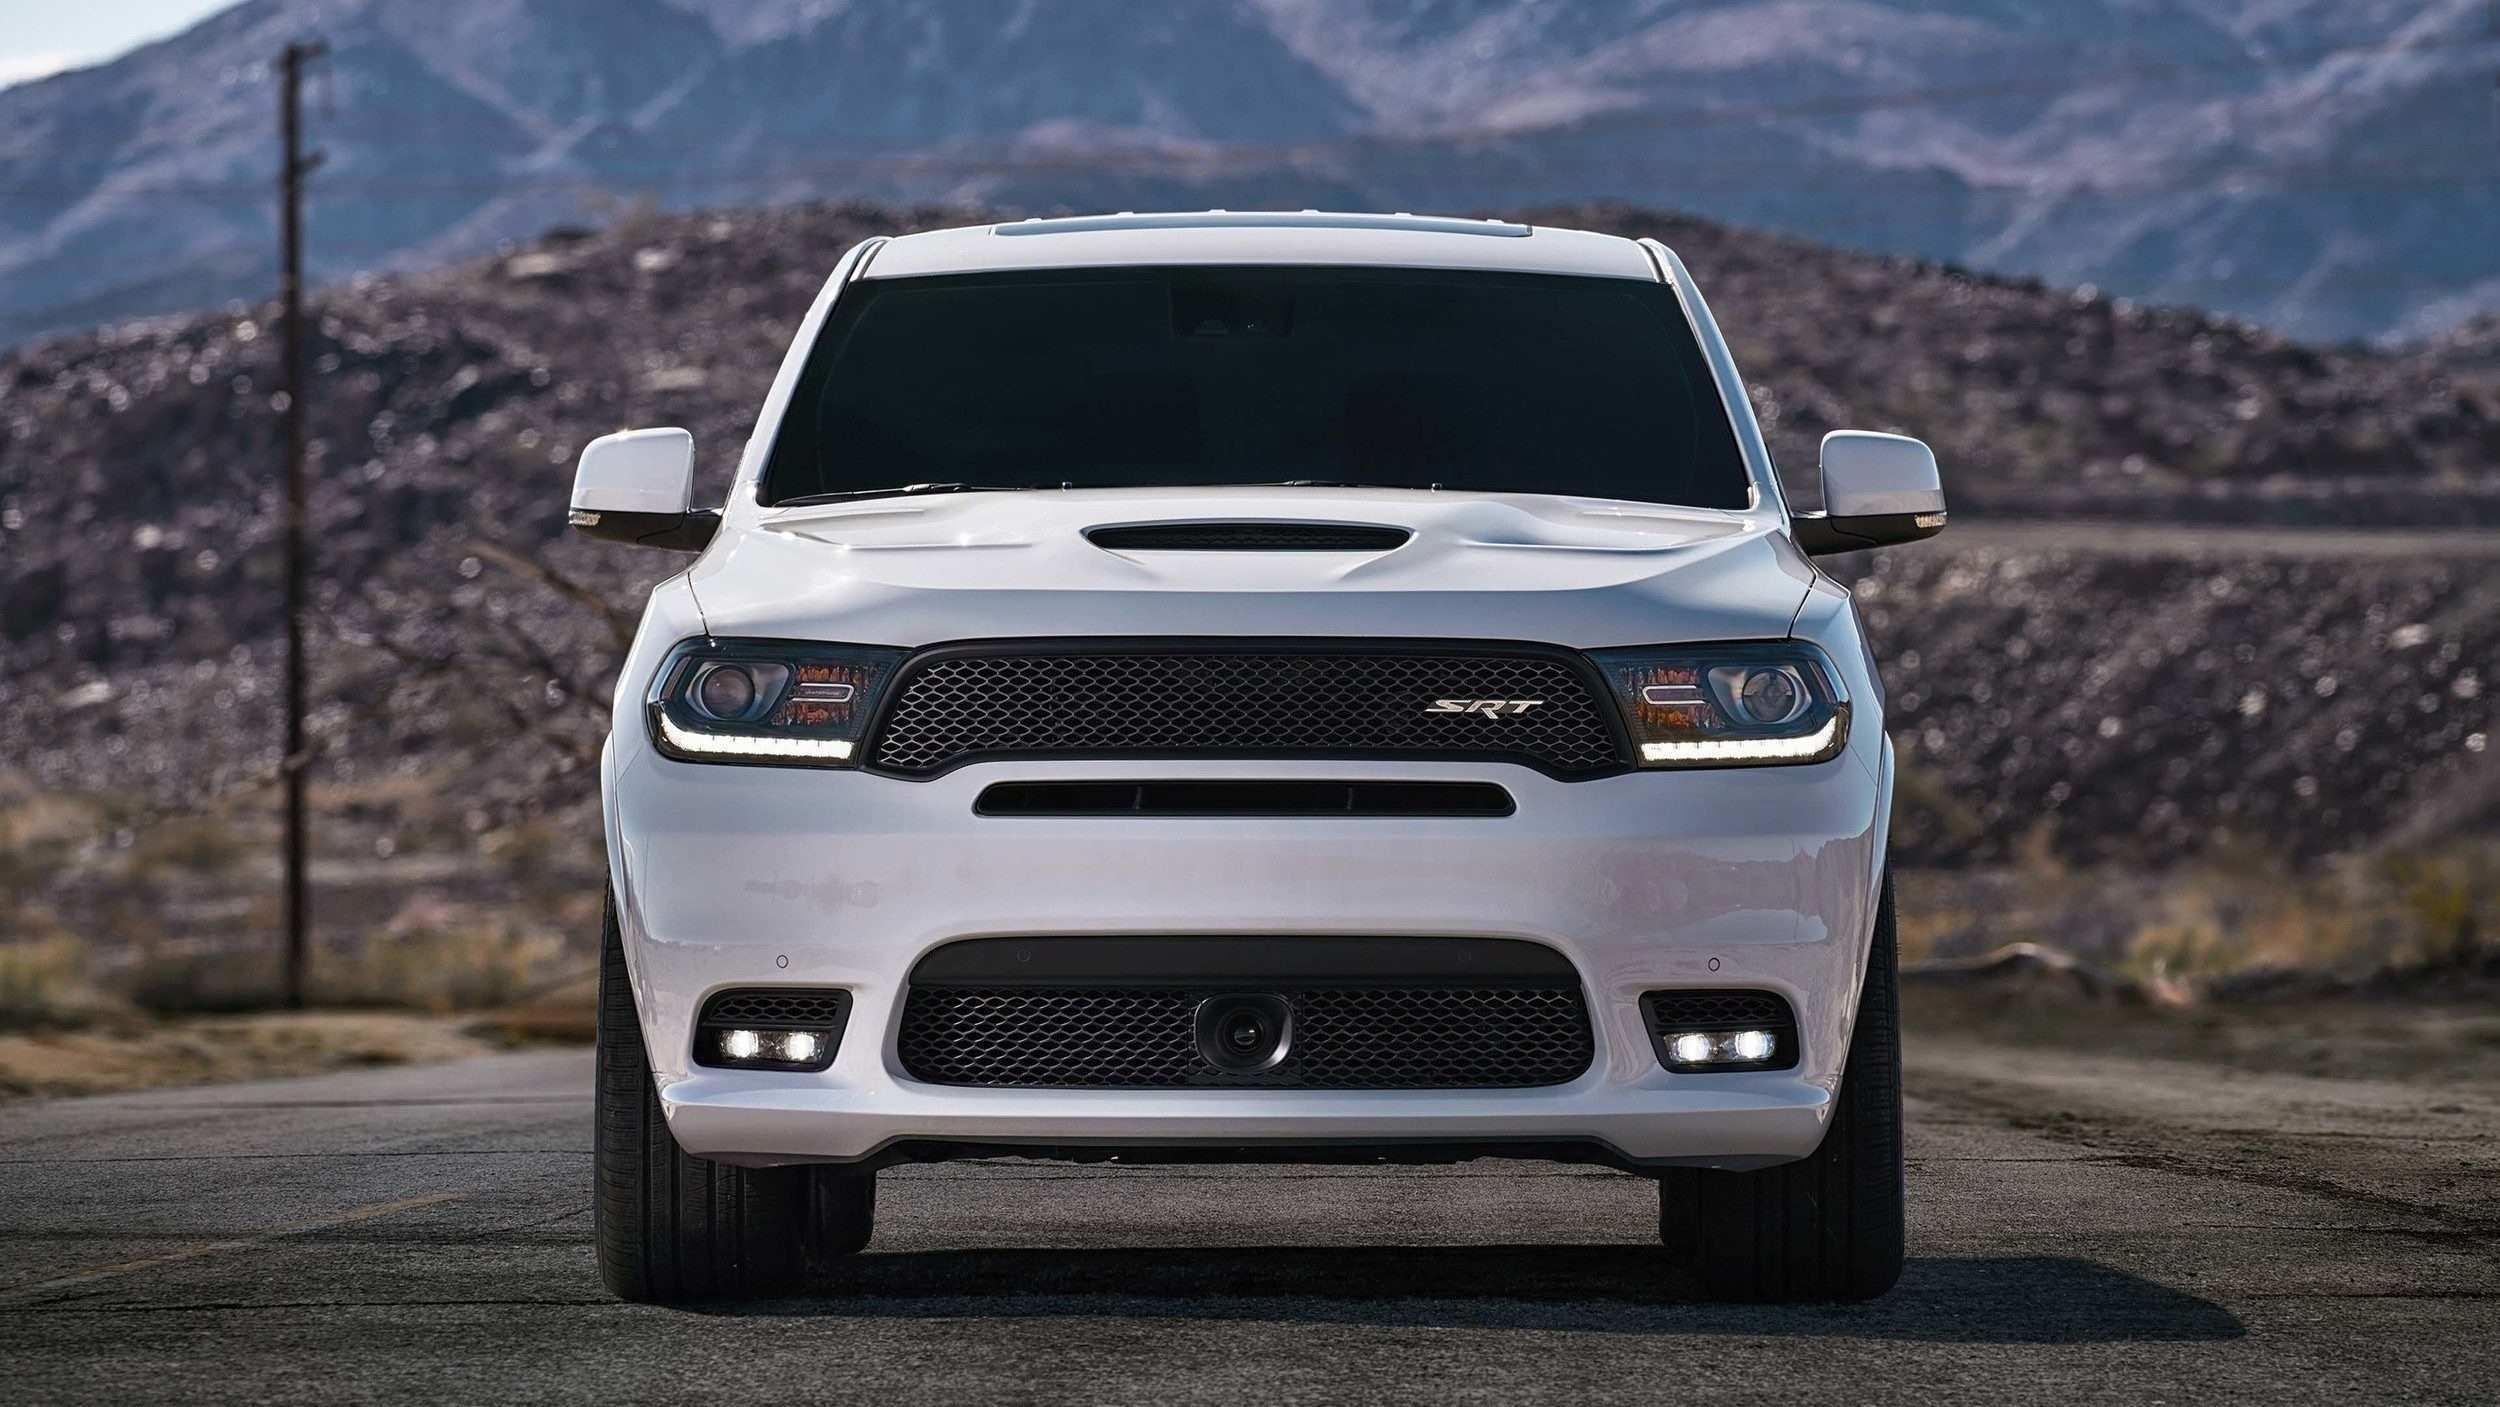 13 All New 2019 Dodge Durango Diesel Srt8 Price Design And Review